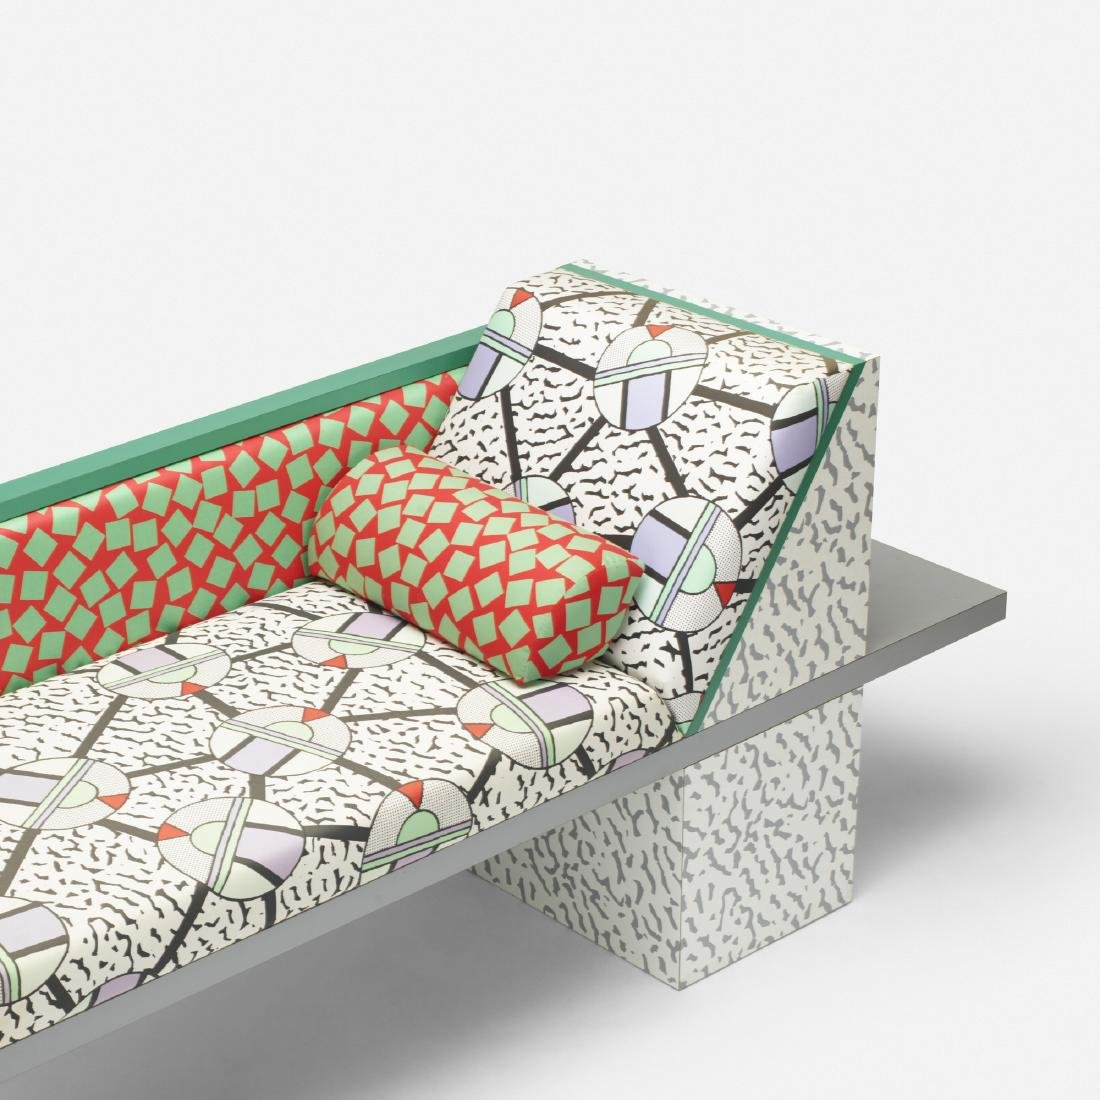 Nathalie du Pasquier, Royal daybed - 3